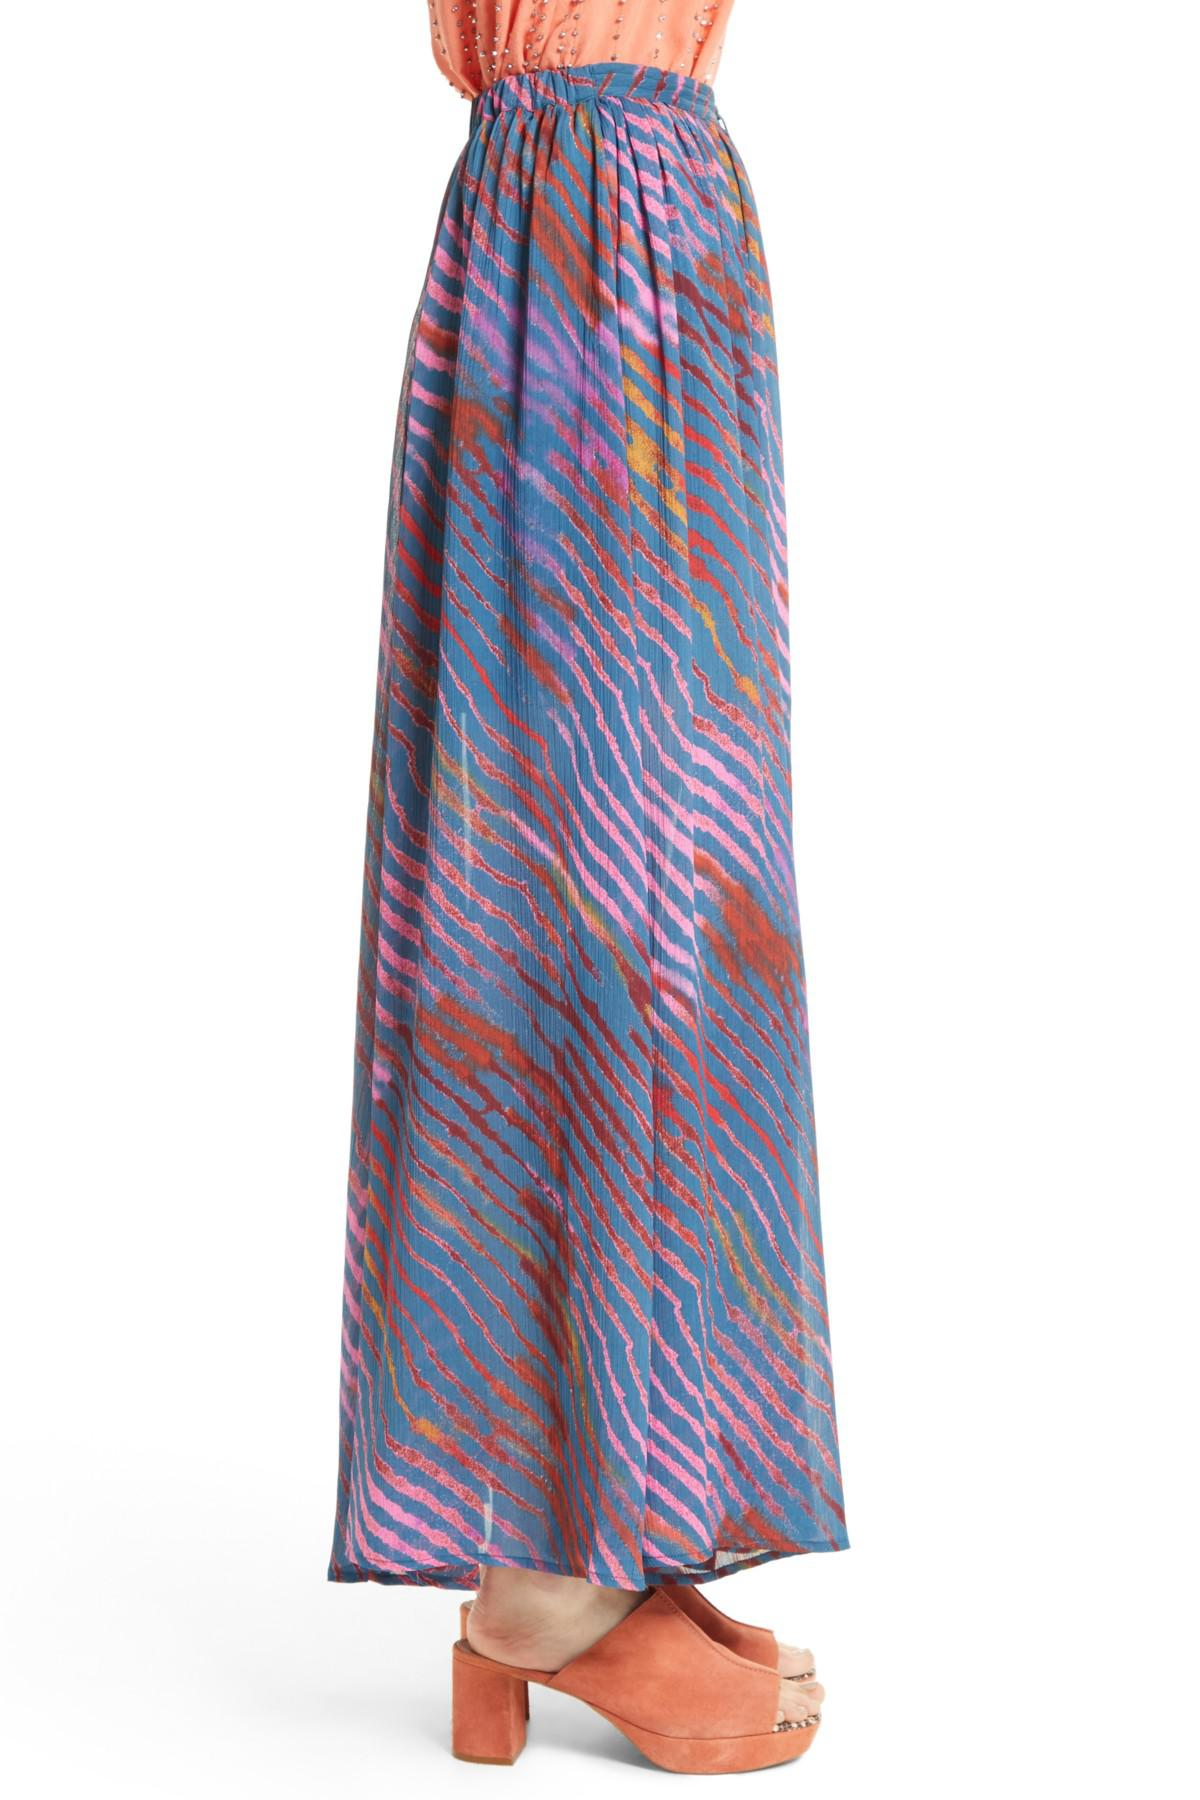 827f033cb1 Free People True To You Maxi Skirt in Blue - Lyst